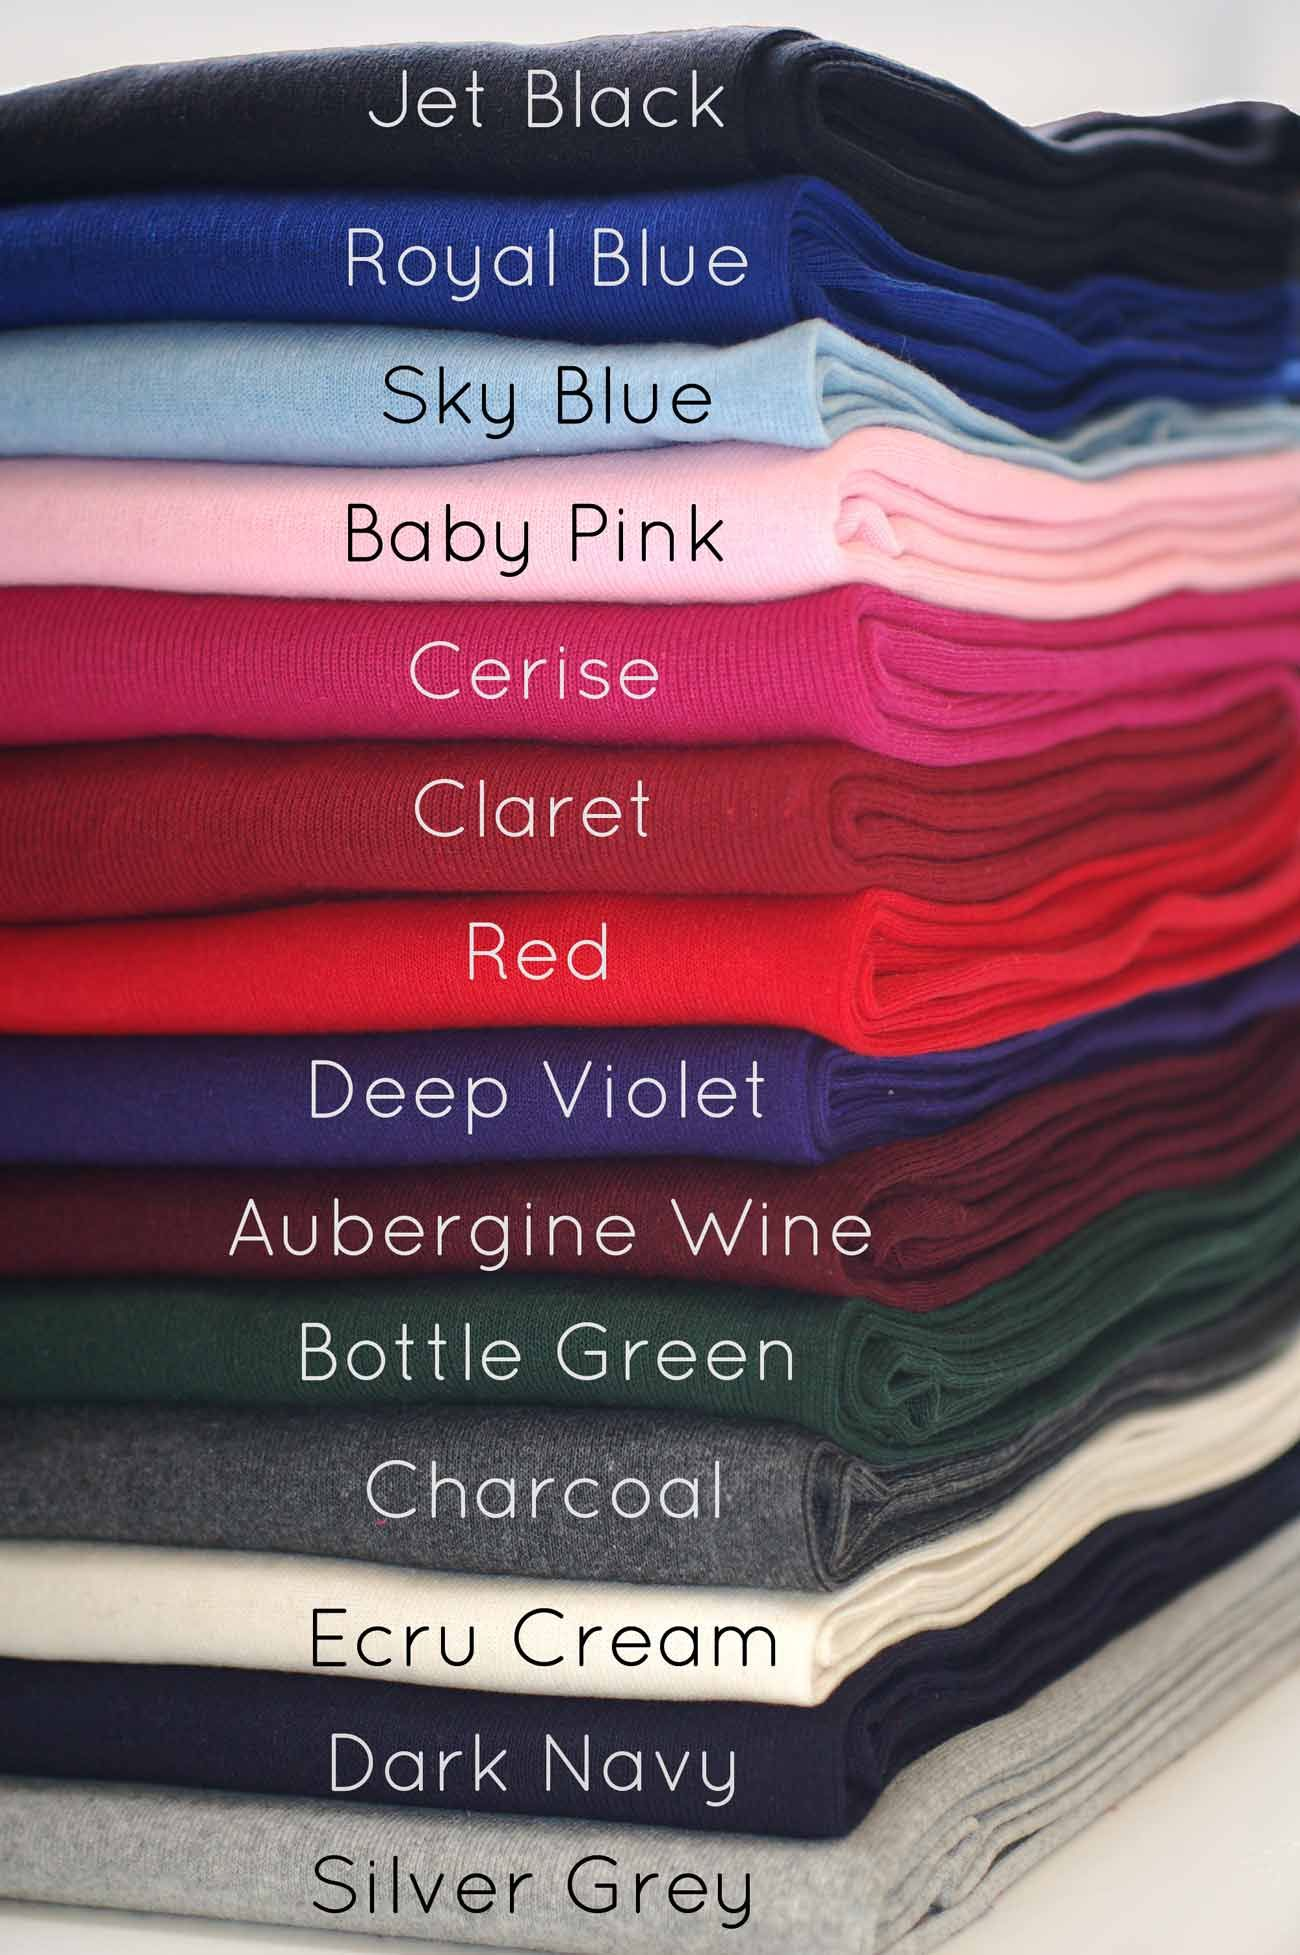 Neotrims Cotton Polyester Stretch Knit Rib Fabric Trim Garments Waistbands Cuffs Autumn Color Palette Fashion Ribbed Fabric Color Combinations For Clothes